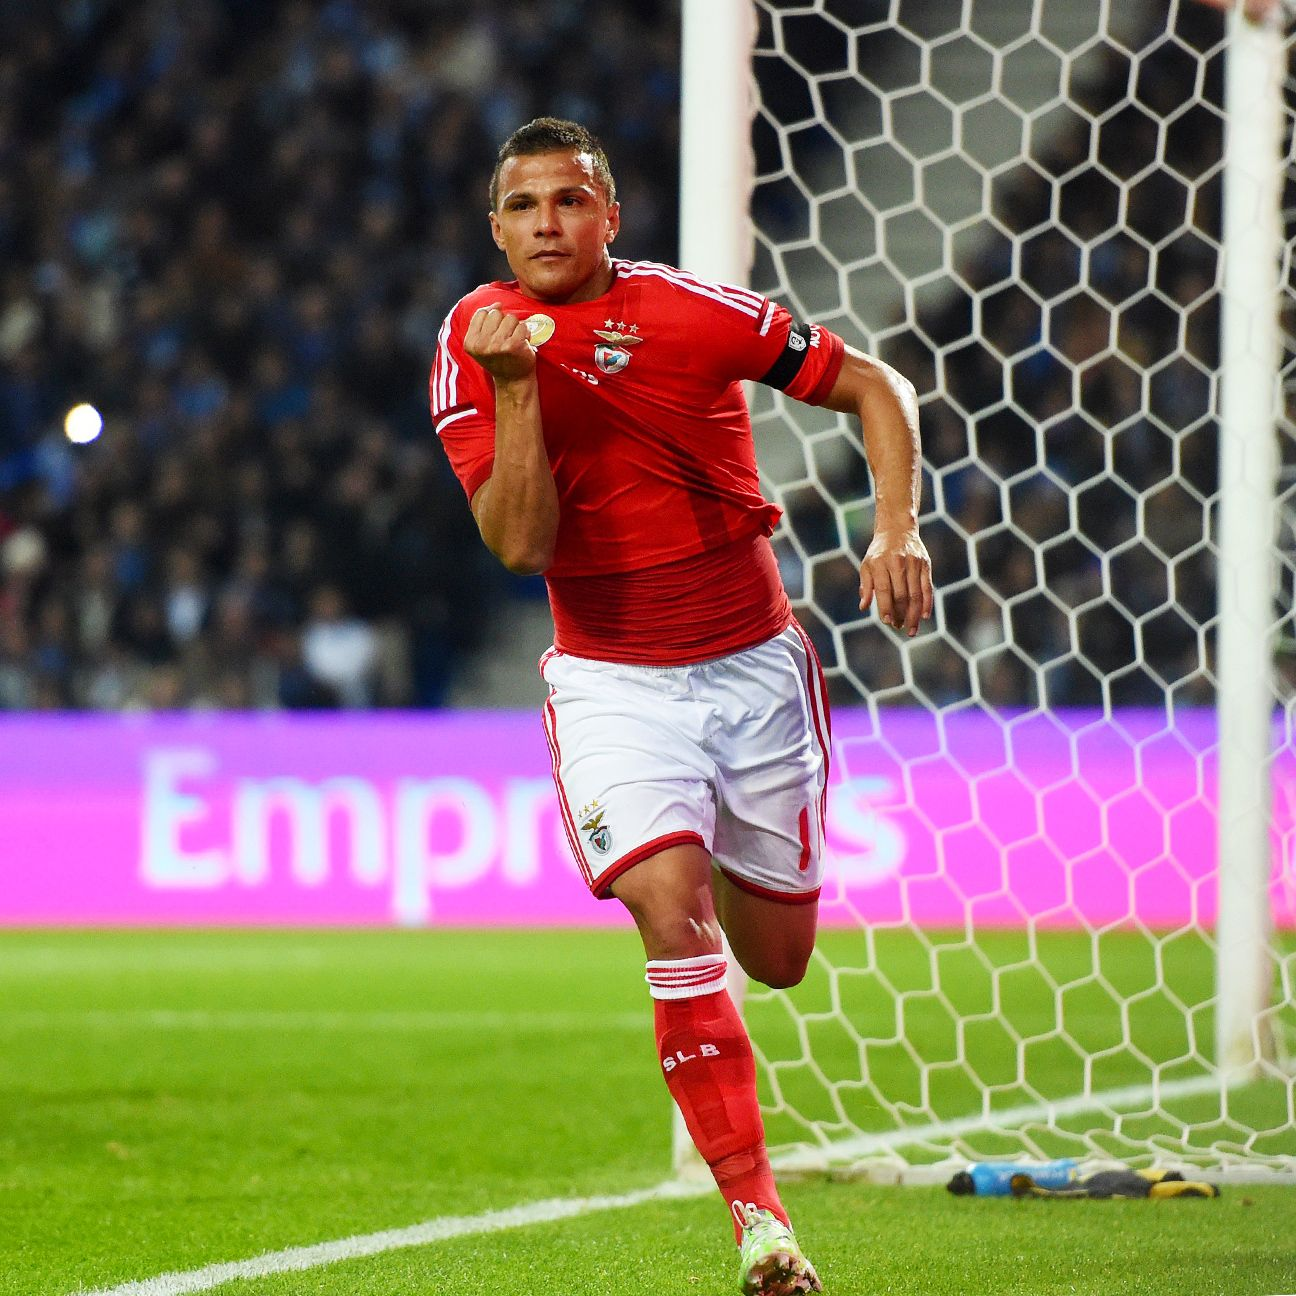 Benfica extended their lead atop the Portuguese table to six points over Porto, thanks to Lima's double.